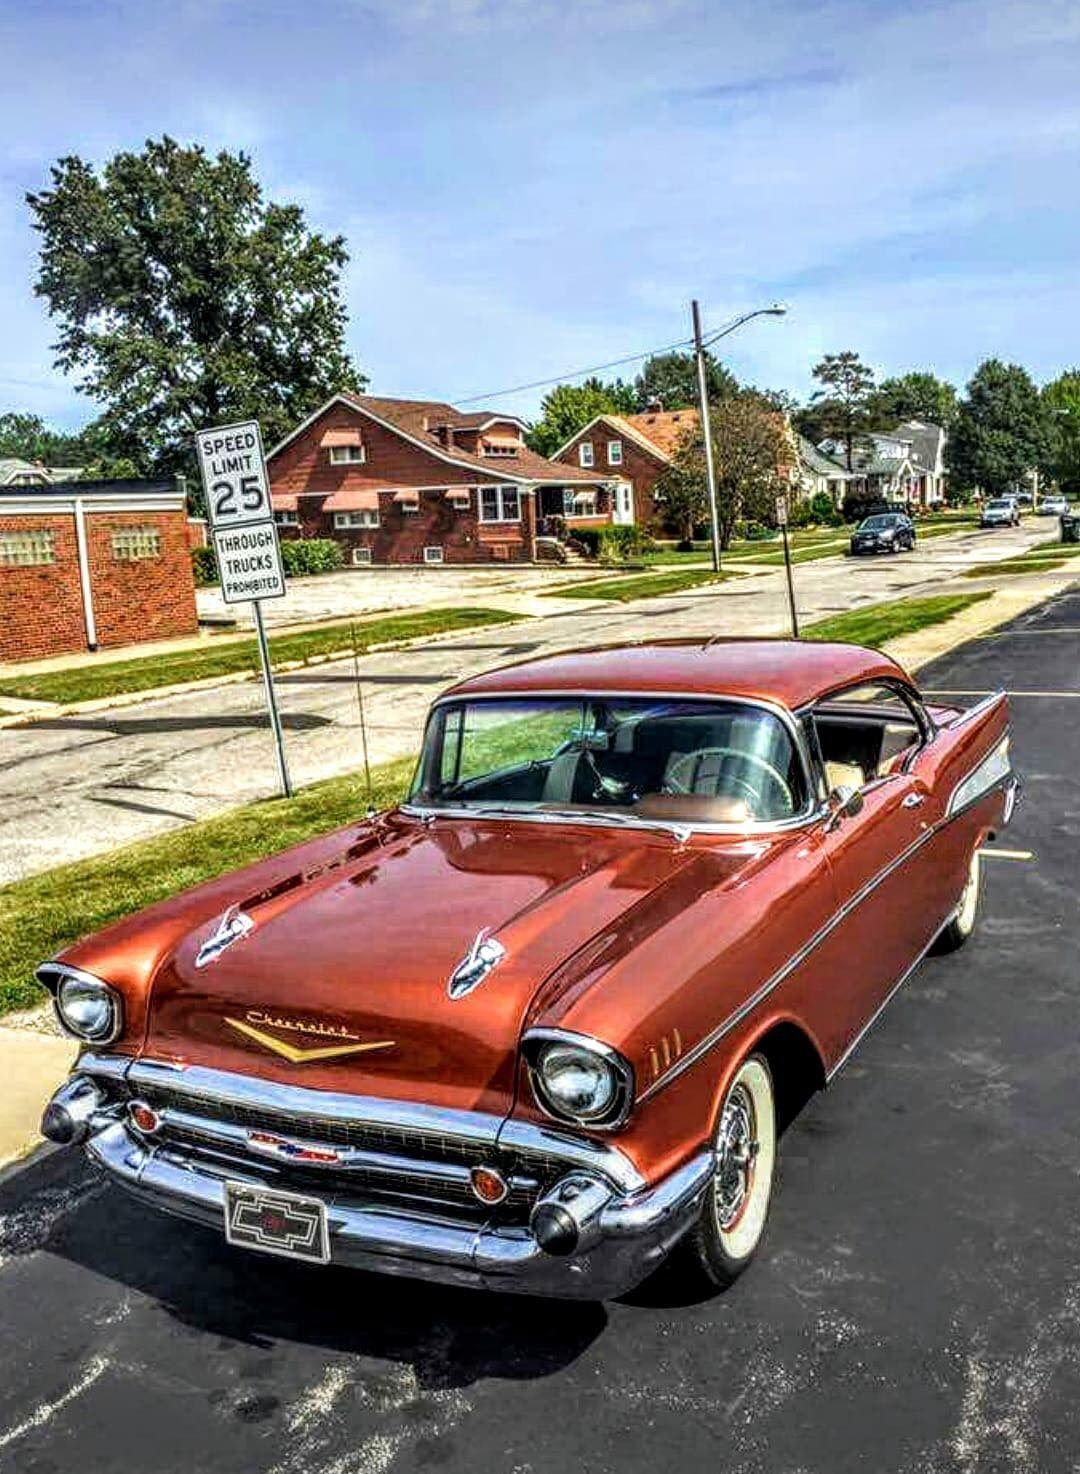 Pin By Don Case On Tri Five Antique Cars 1957 Chevrolet Cars Voiture